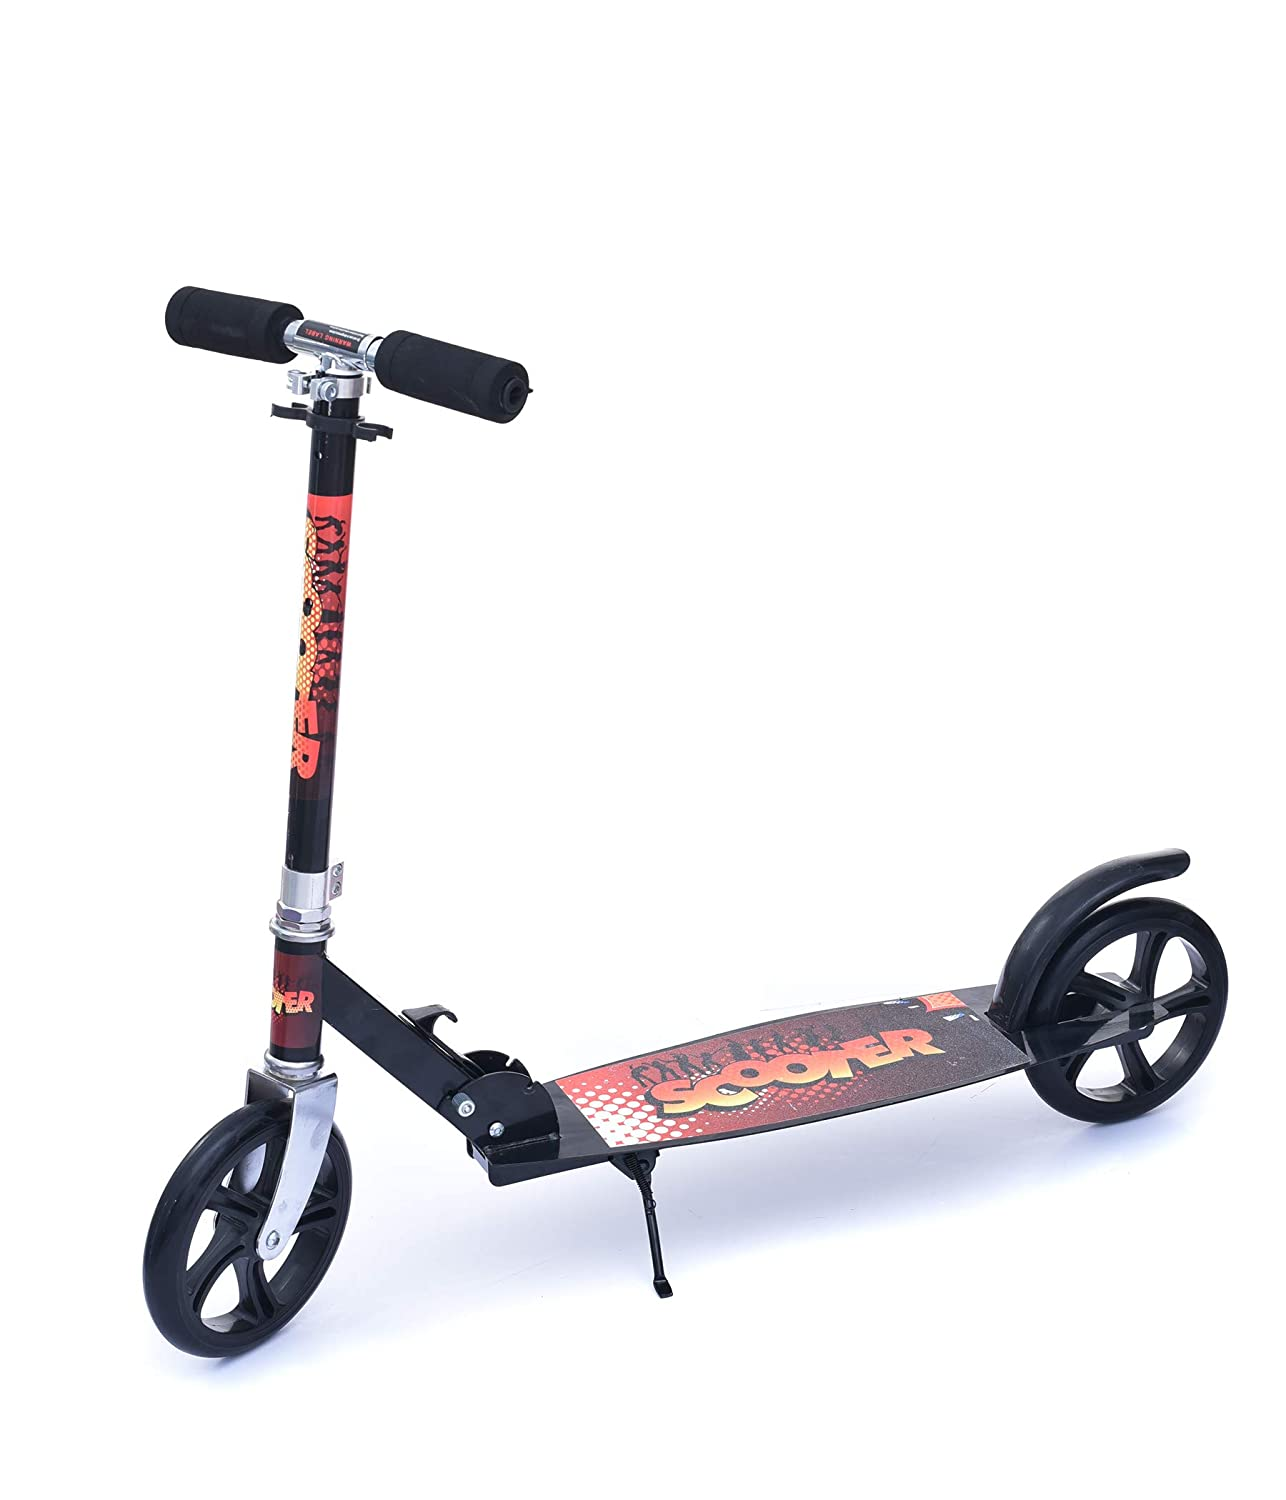 IRIS Scooter for Adult Youth Kids - Foldable Adjustable Portable  Ultra-Lightweight   Teen Kick Scooter with Shoulder Strap, Birthday Gifts  for Kids 3 Years ...